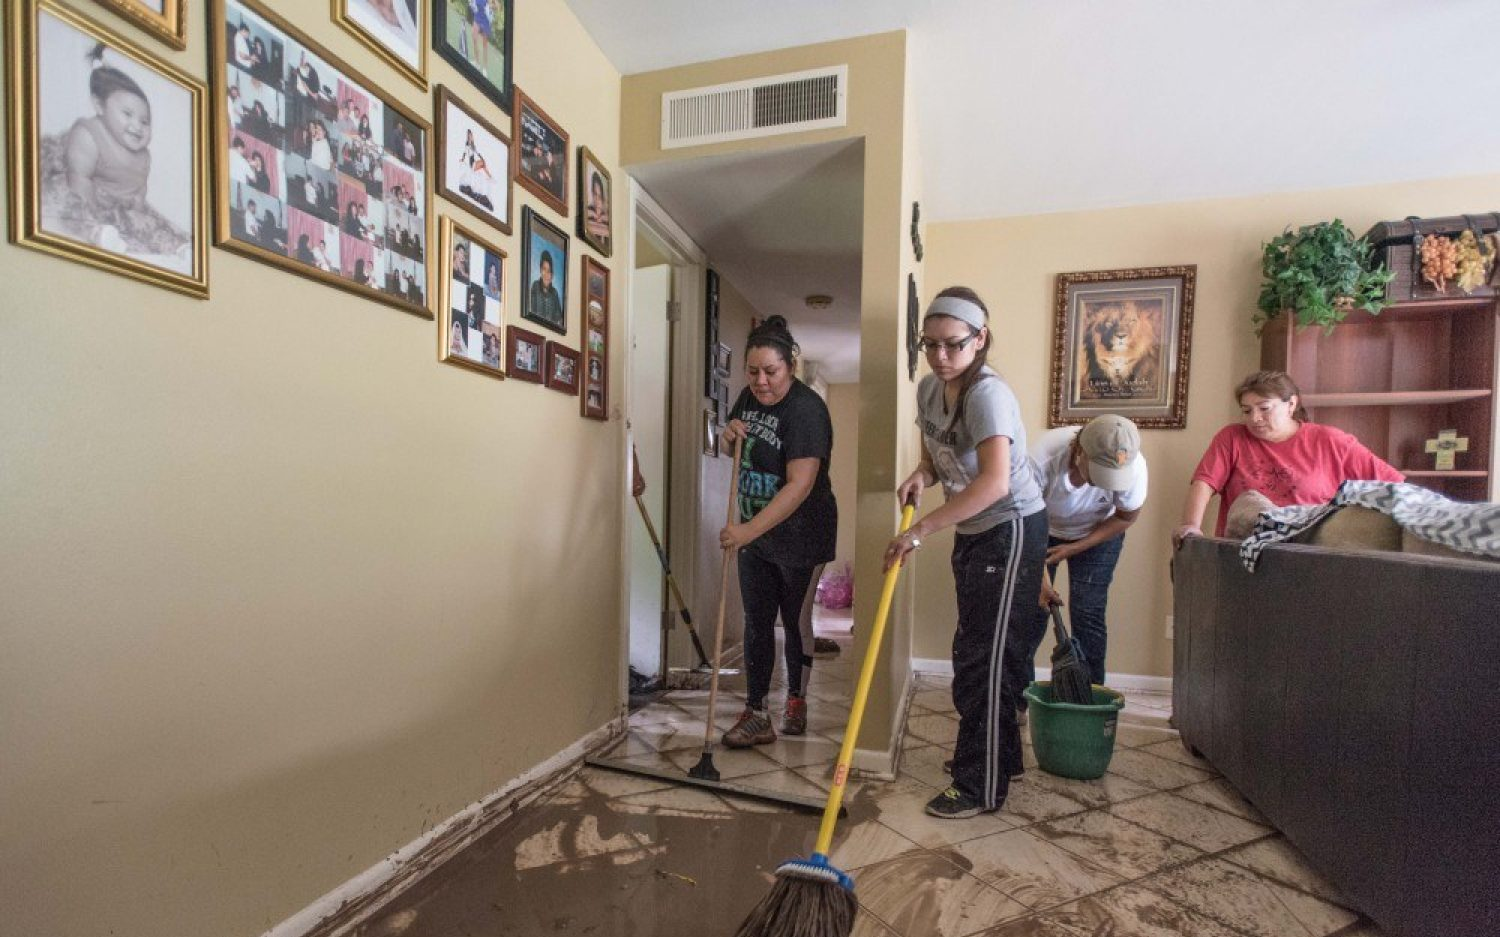 Samaritan's Purse heads to Texas as floodwaters continue to rise